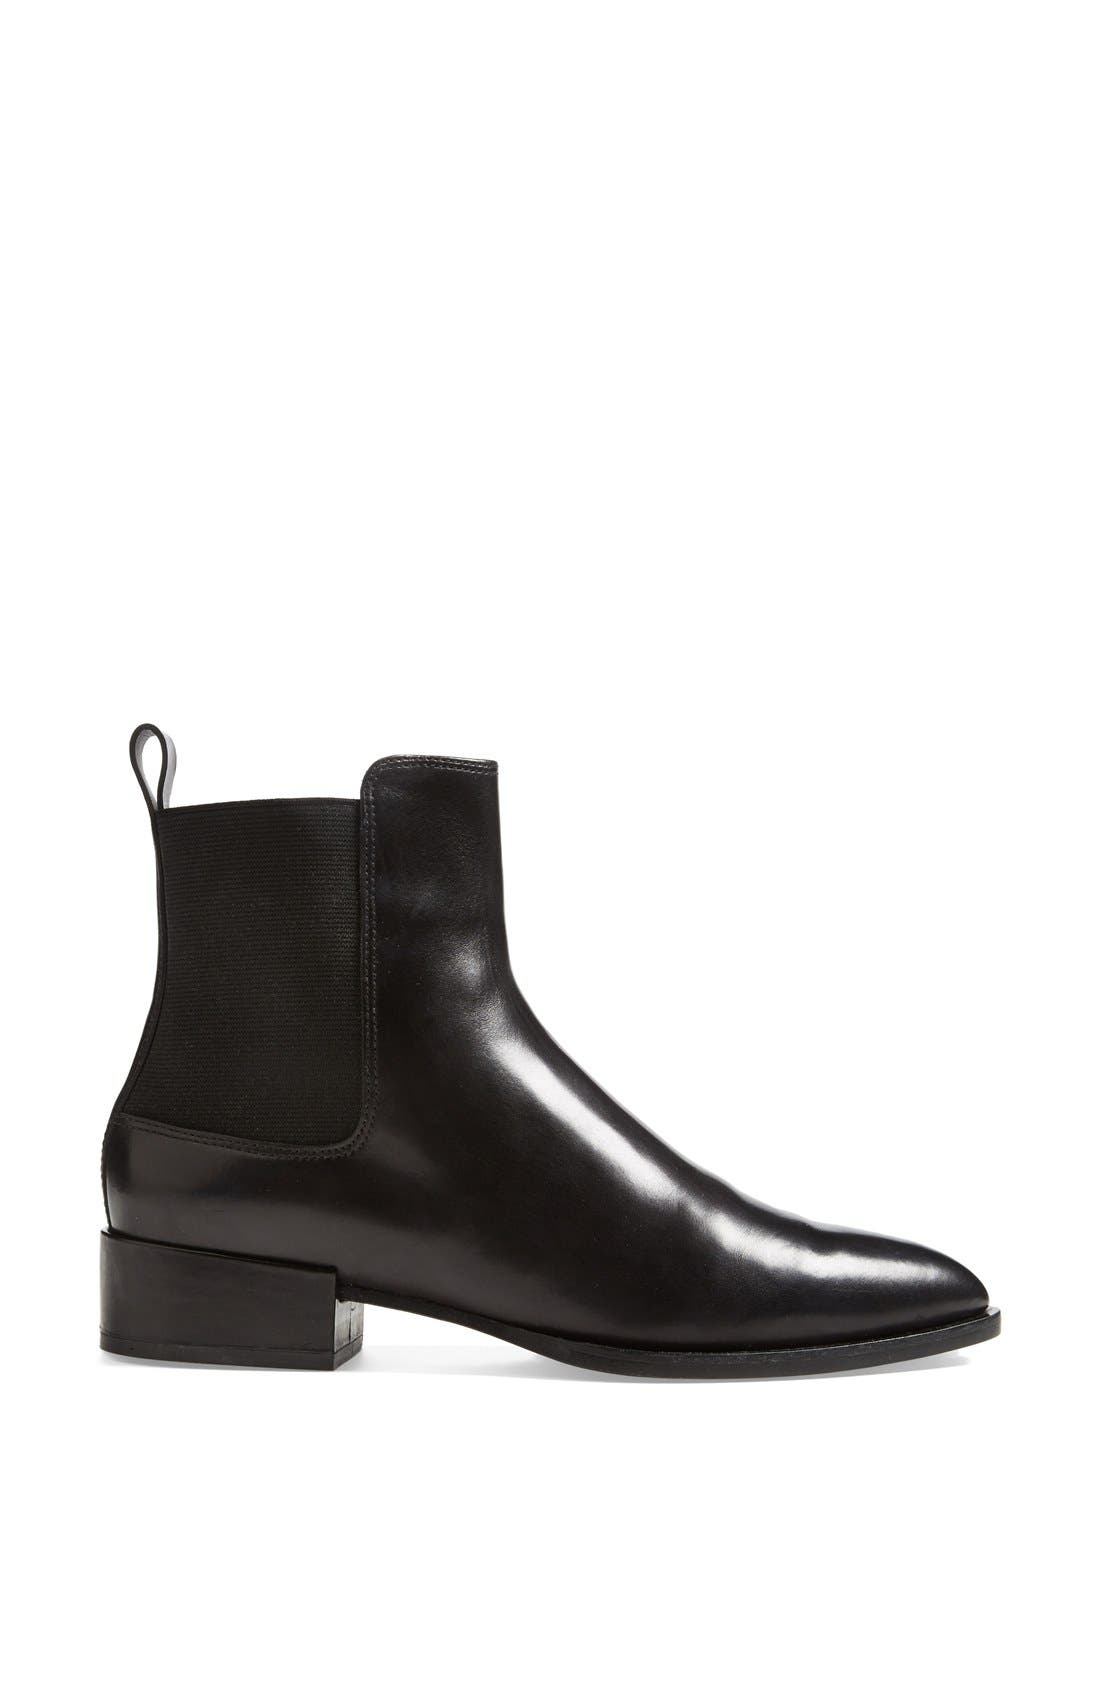 VINCE, 'Yarmon' Almond Toe Calfskin Leather Chelsea Boot, Alternate thumbnail 4, color, 002